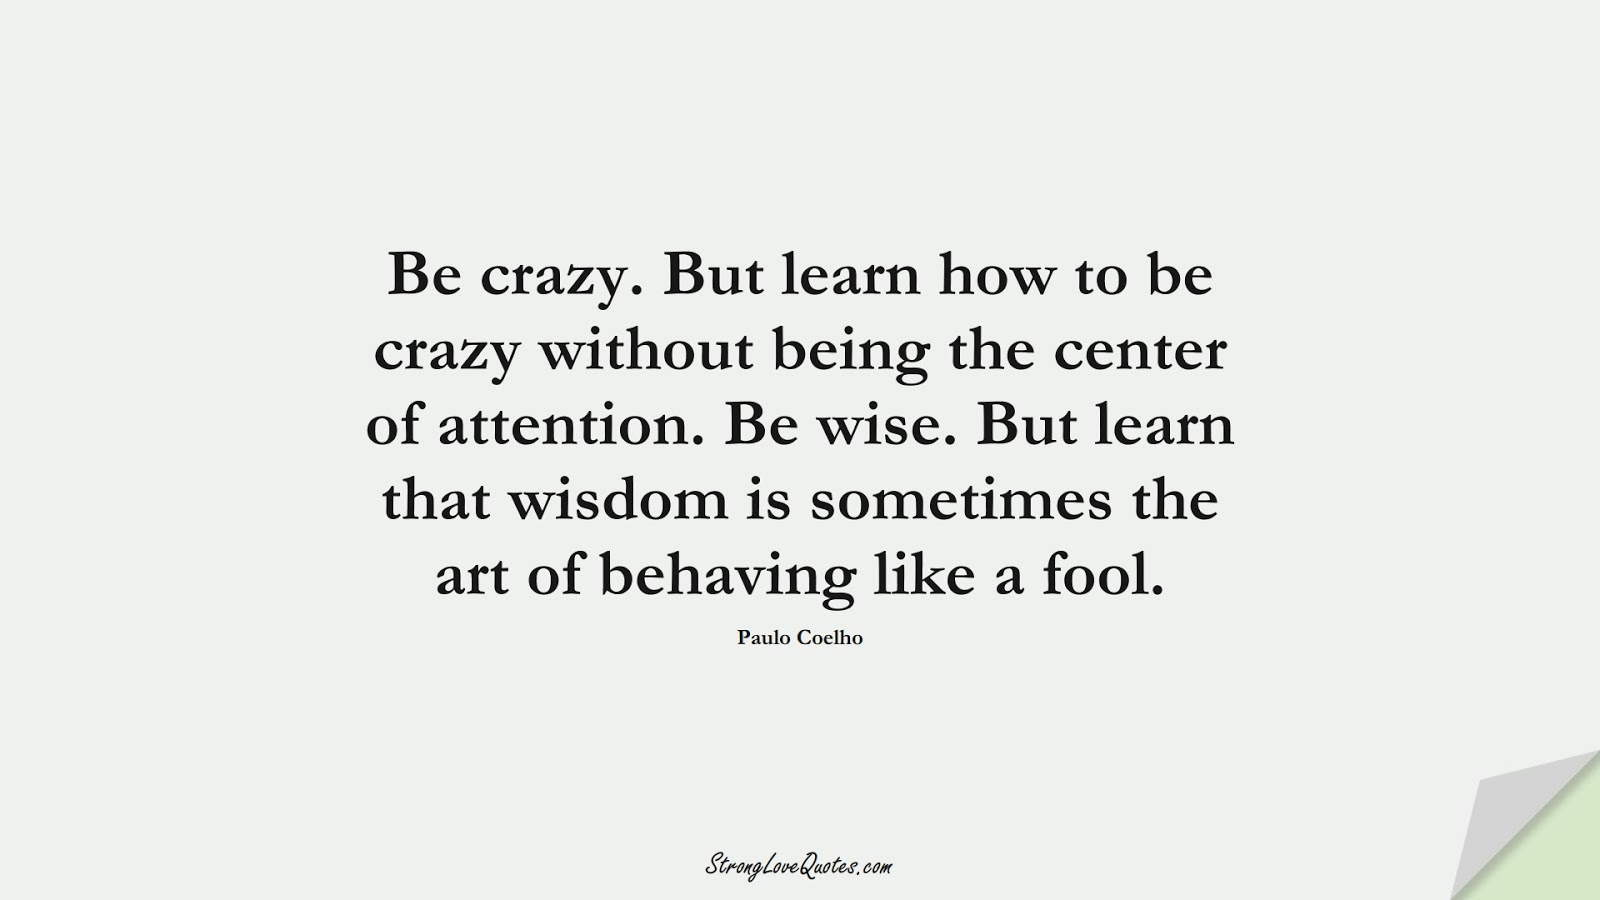 Be crazy. But learn how to be crazy without being the center of attention. Be wise. But learn that wisdom is sometimes the art of behaving like a fool. (Paulo Coelho);  #LearningQuotes